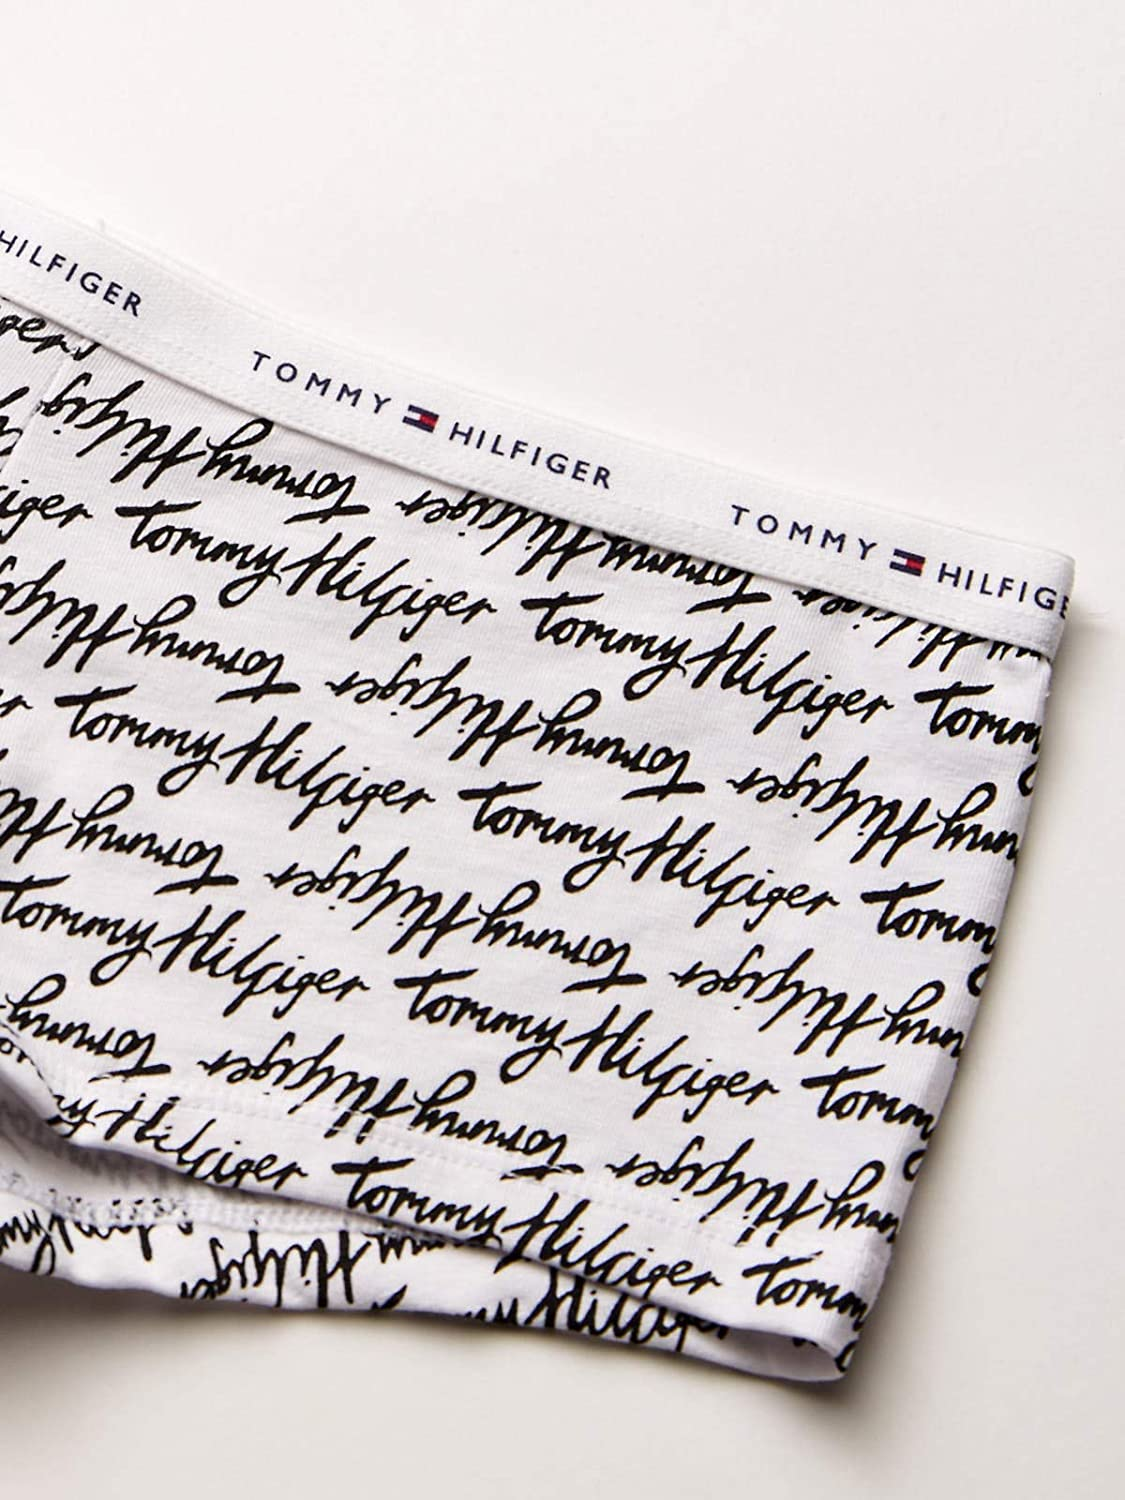 Multipack Boy Short Panties Tommy Hilfiger Womens Cotton Boyshort Underwear Panty